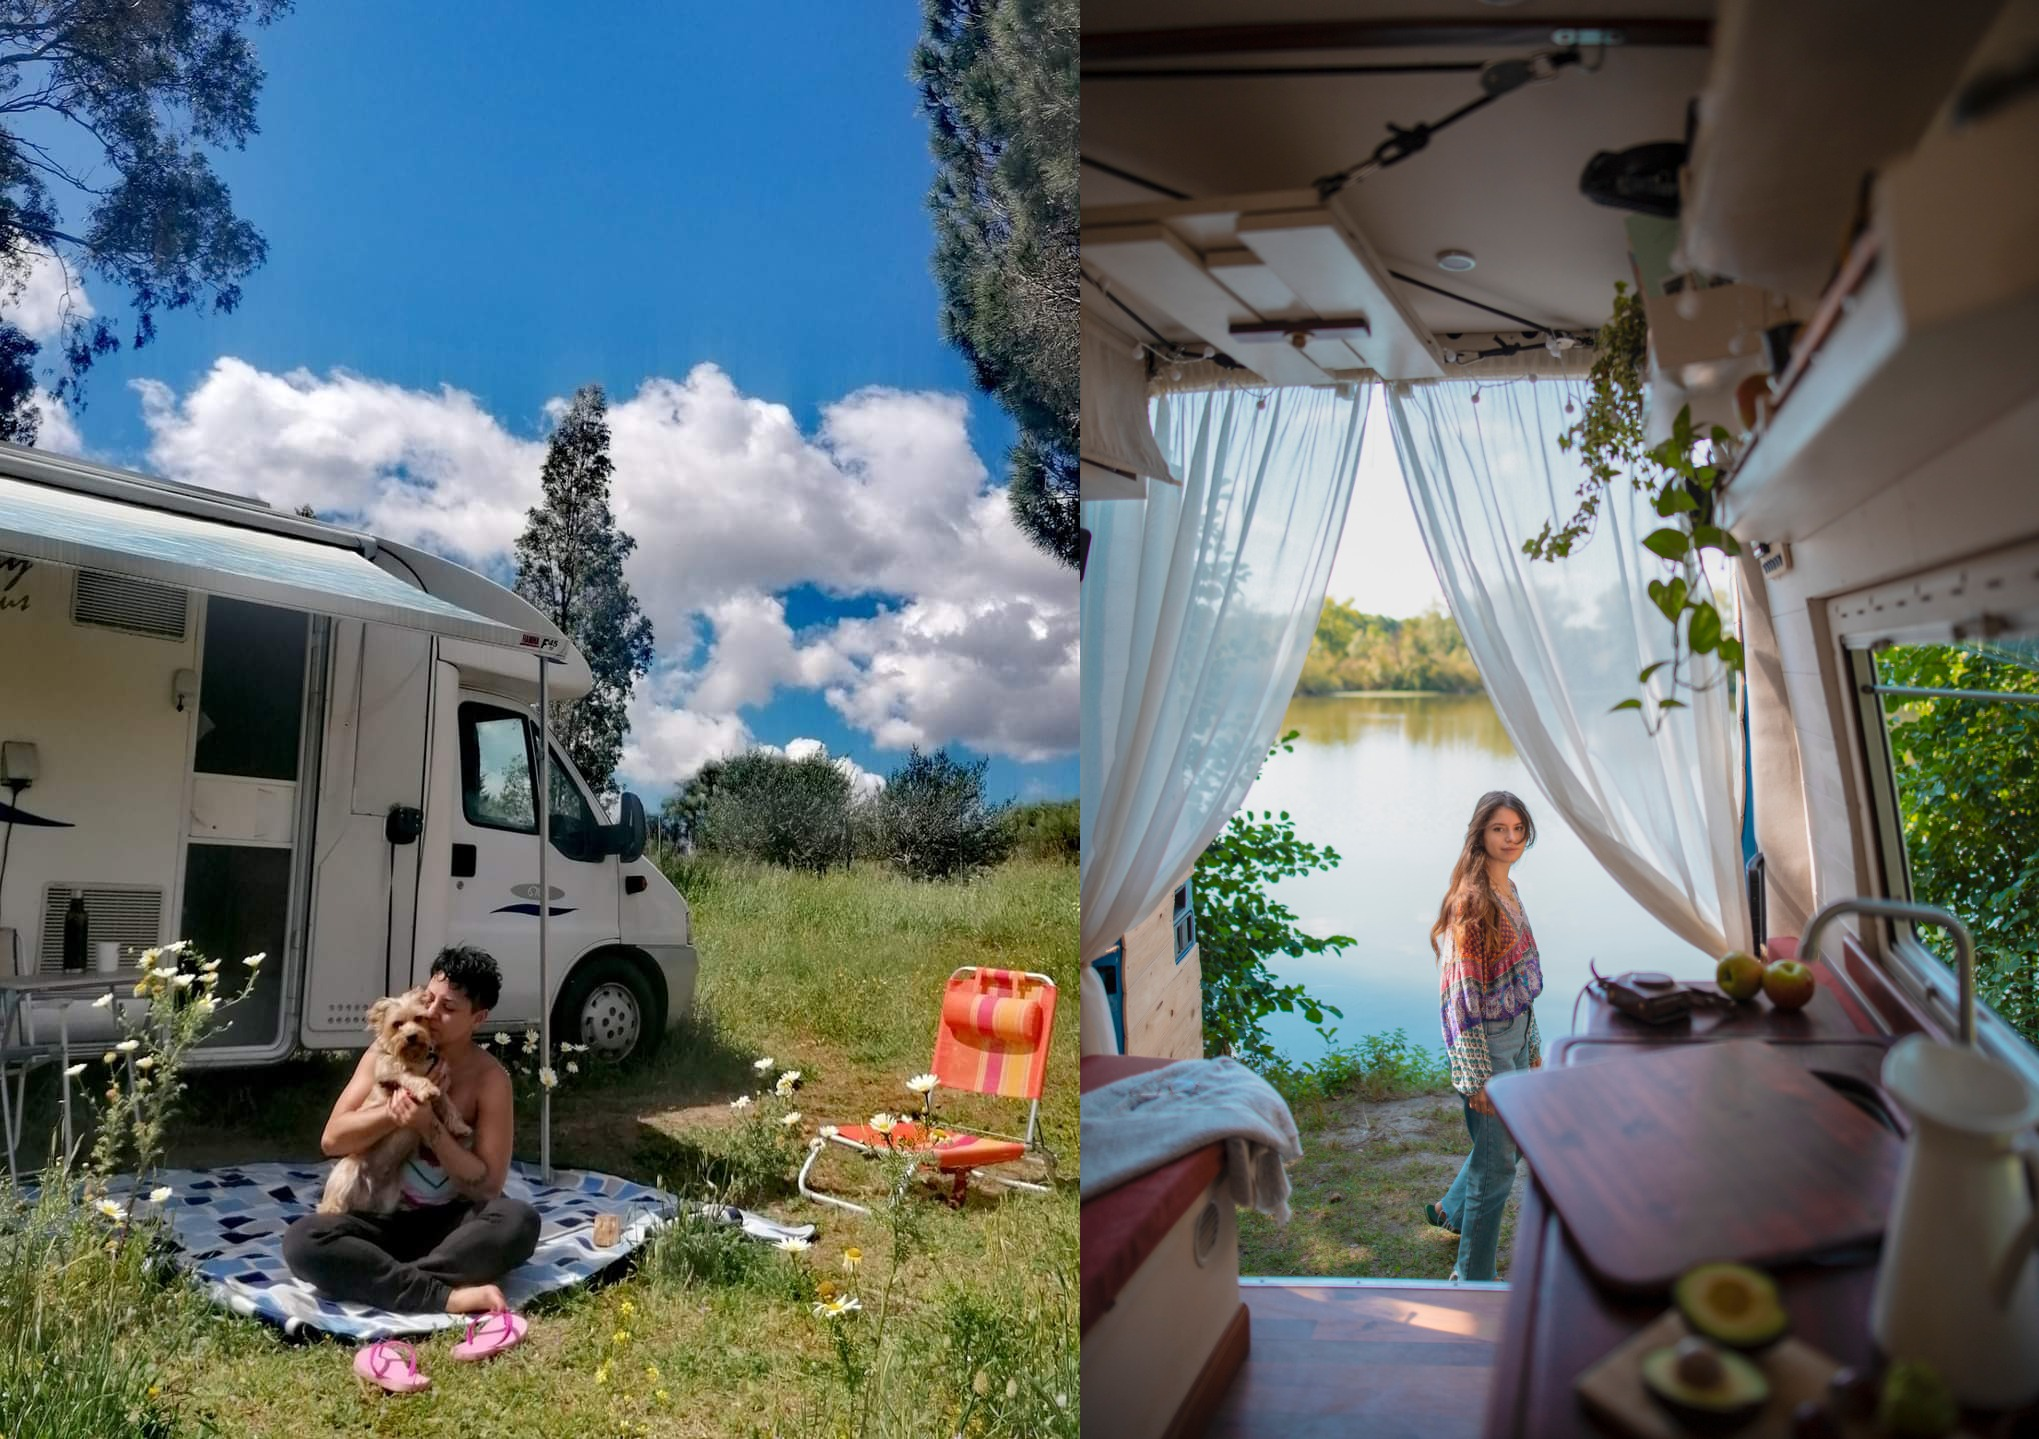 vice.com - The Unfortunate Truths of Living the 'Vanlife' - VICE